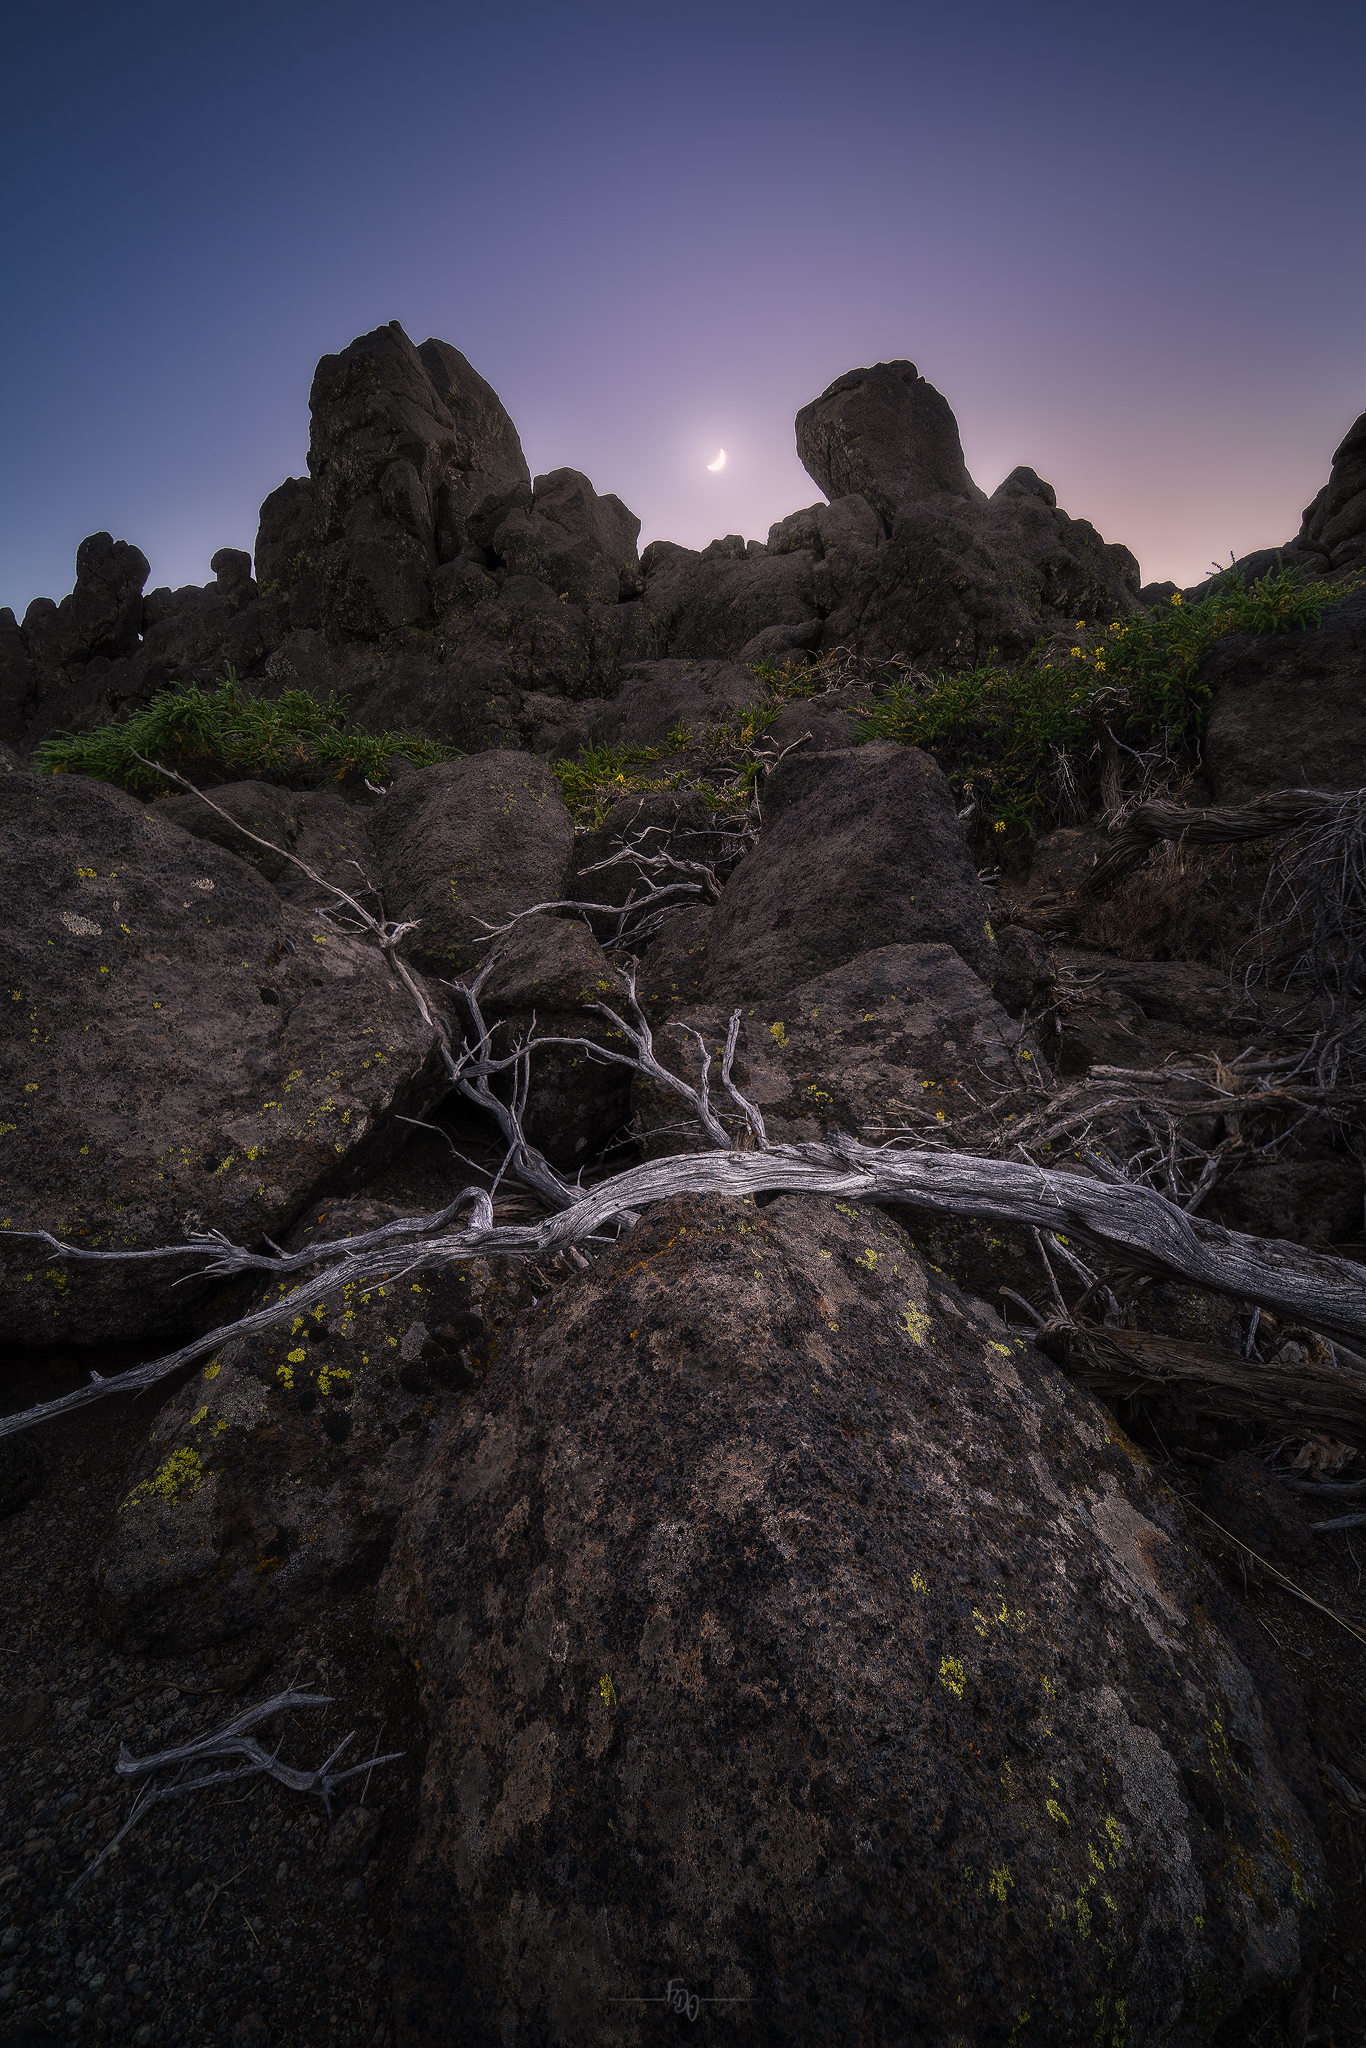 Moon lighting up branches and rocks...